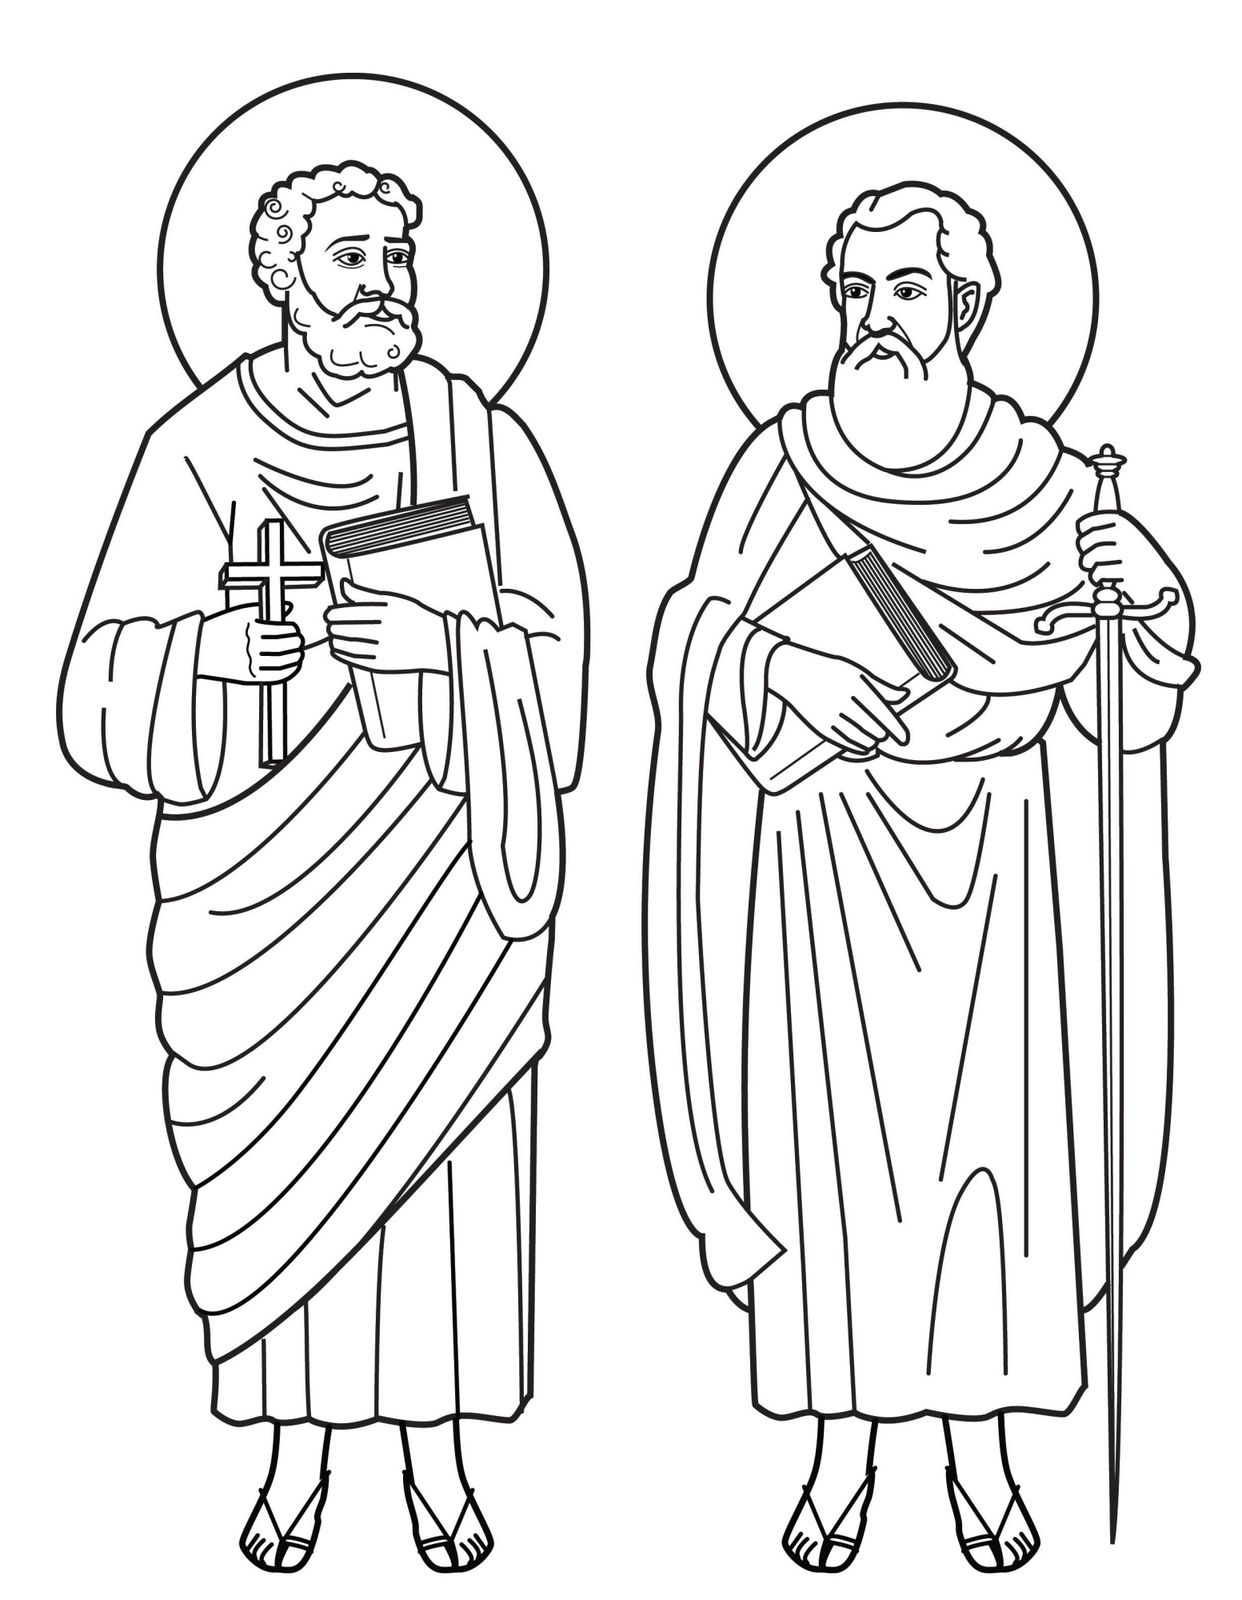 Vies coloriages de saints pierre et paul le blog de jackie - Dessin de saint ...